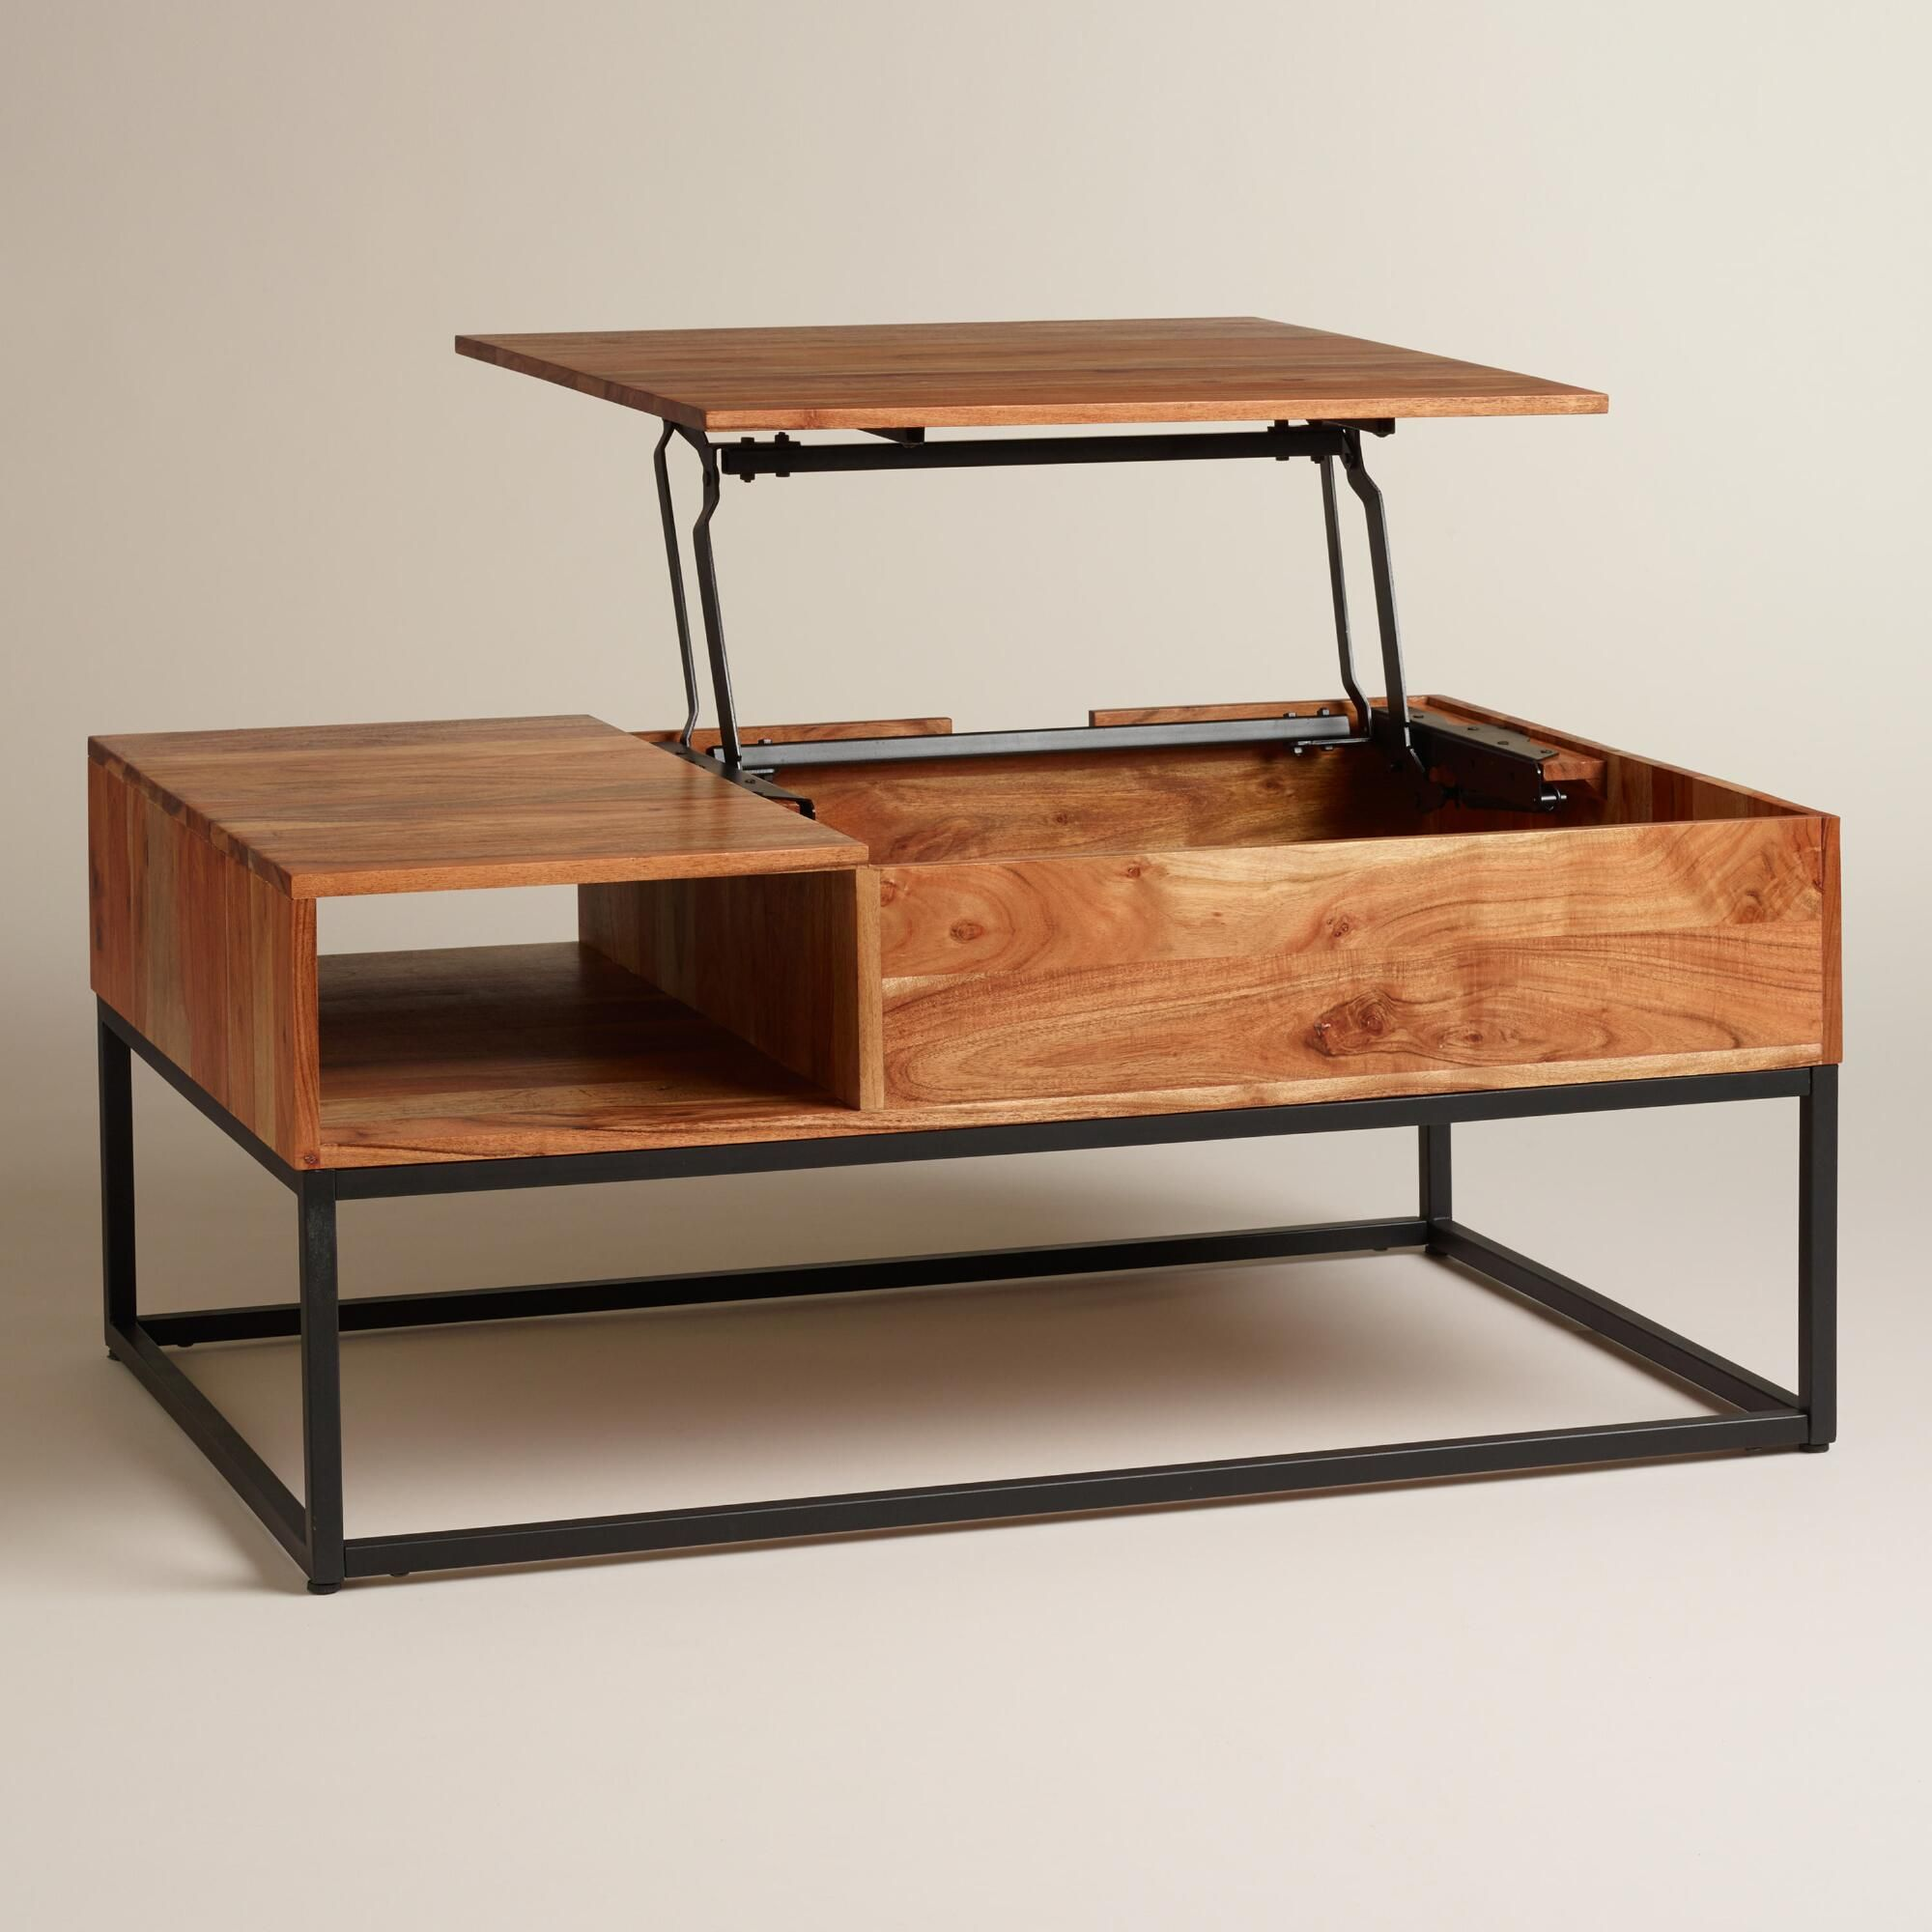 Wood Silas Storage Coffee Table Coffee Table Wood Coffee Table With Storage Metal Coffee Table [ 2000 x 2000 Pixel ]